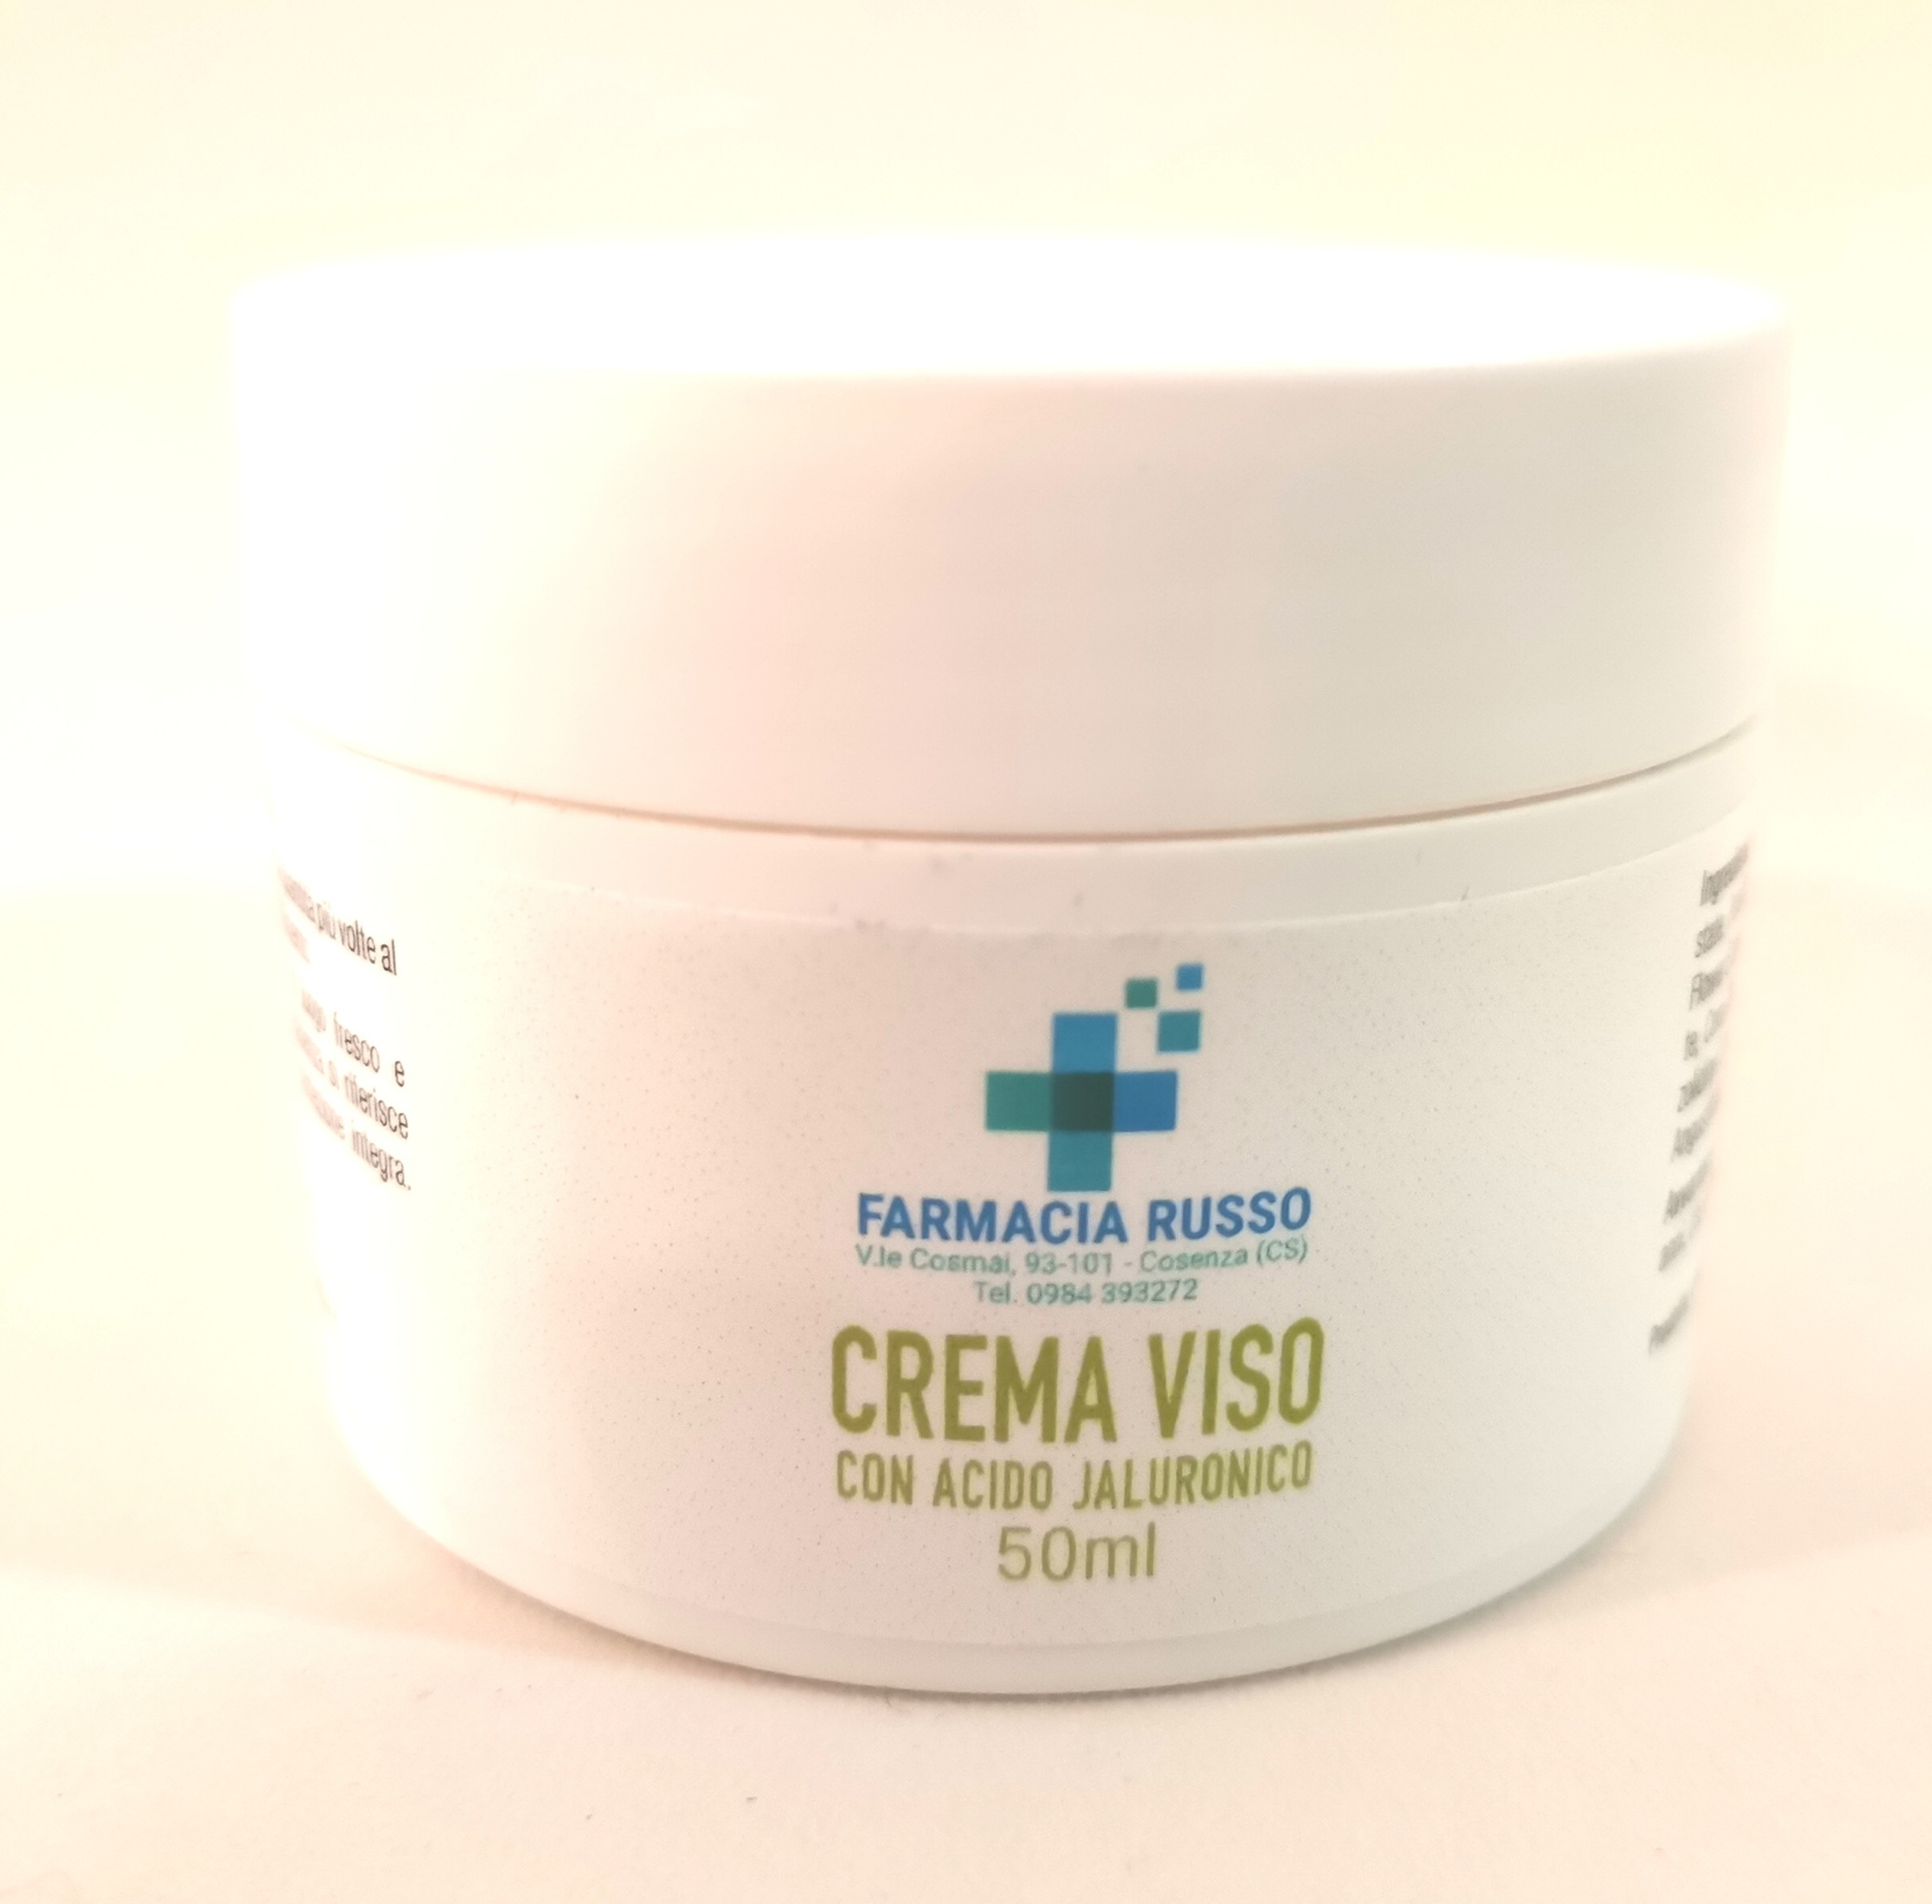 CREMA VISO E COLLO ACIDO IALURONICO 50 ML